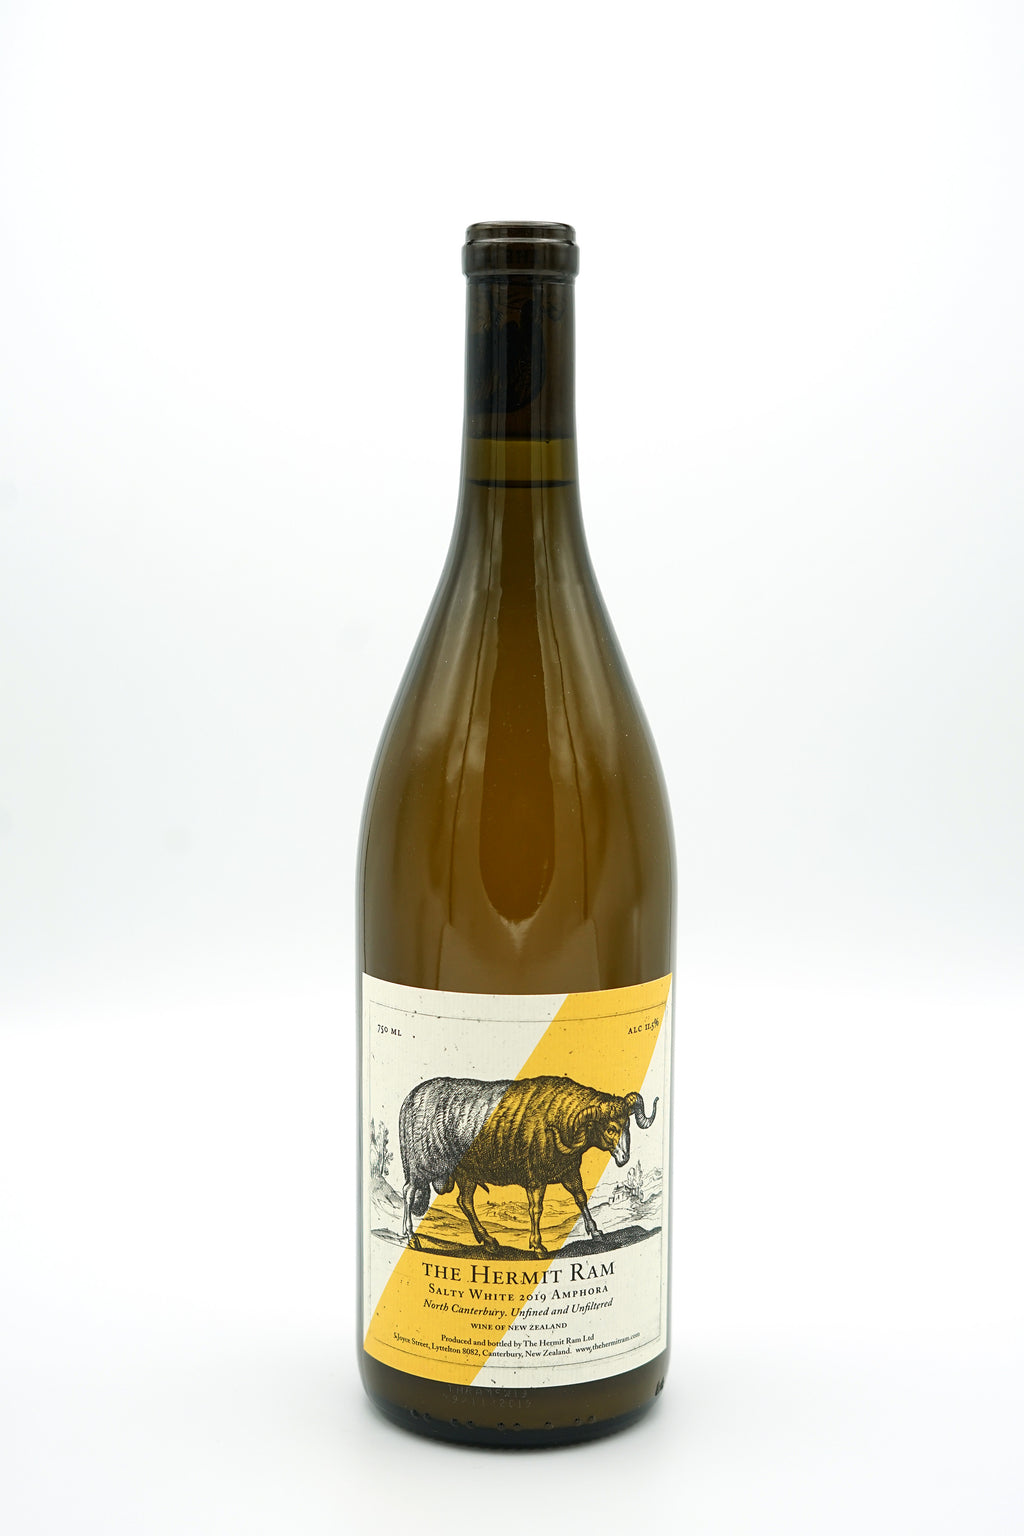 Amphora 'Salty White' 2019 - The Hermit Ram